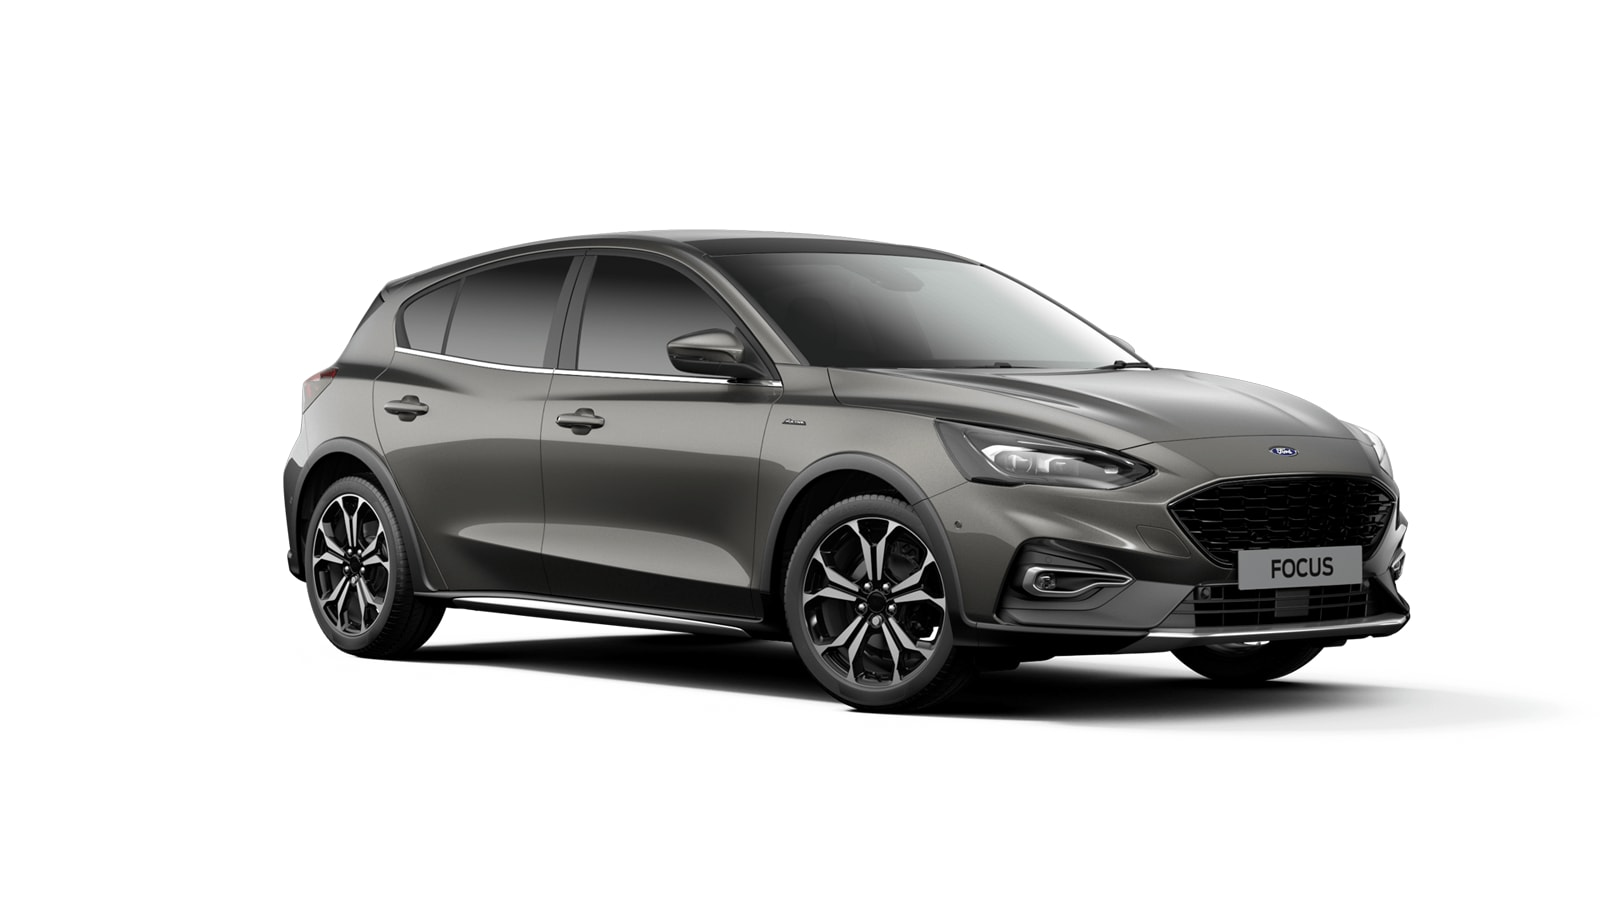 NEW FOCUS MHEV Active X Vignale Edition mHEV